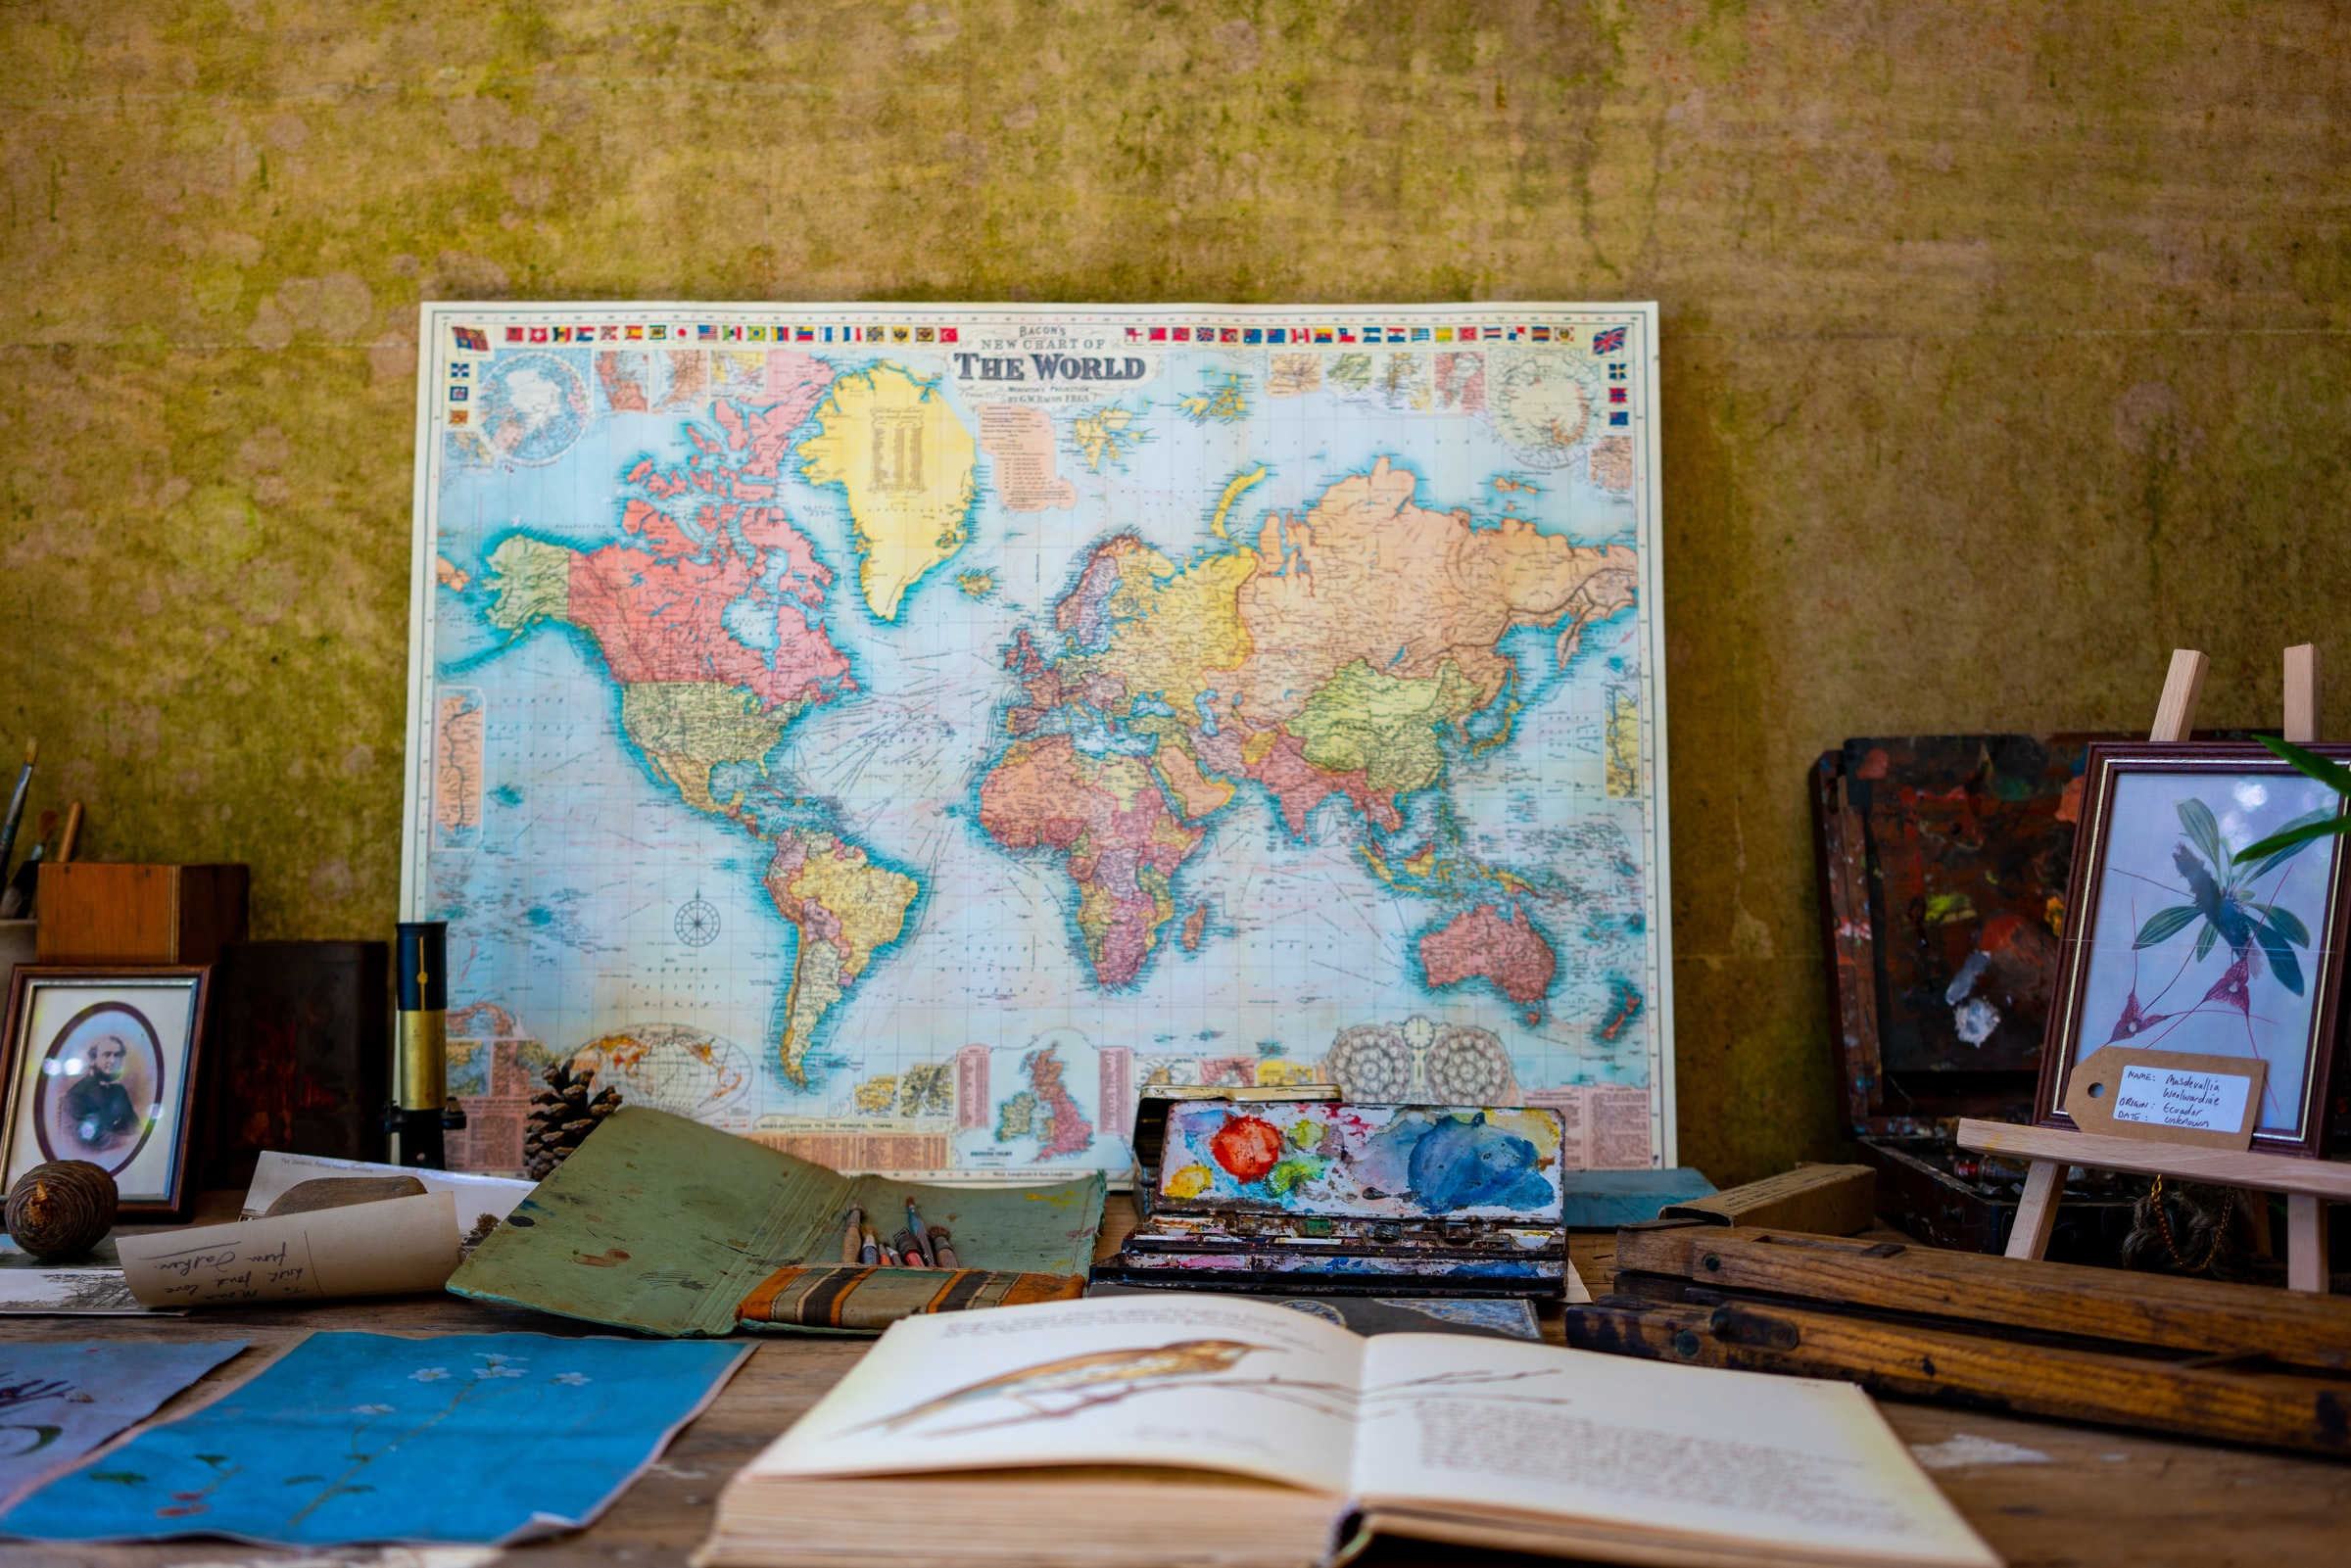 World map with book in front